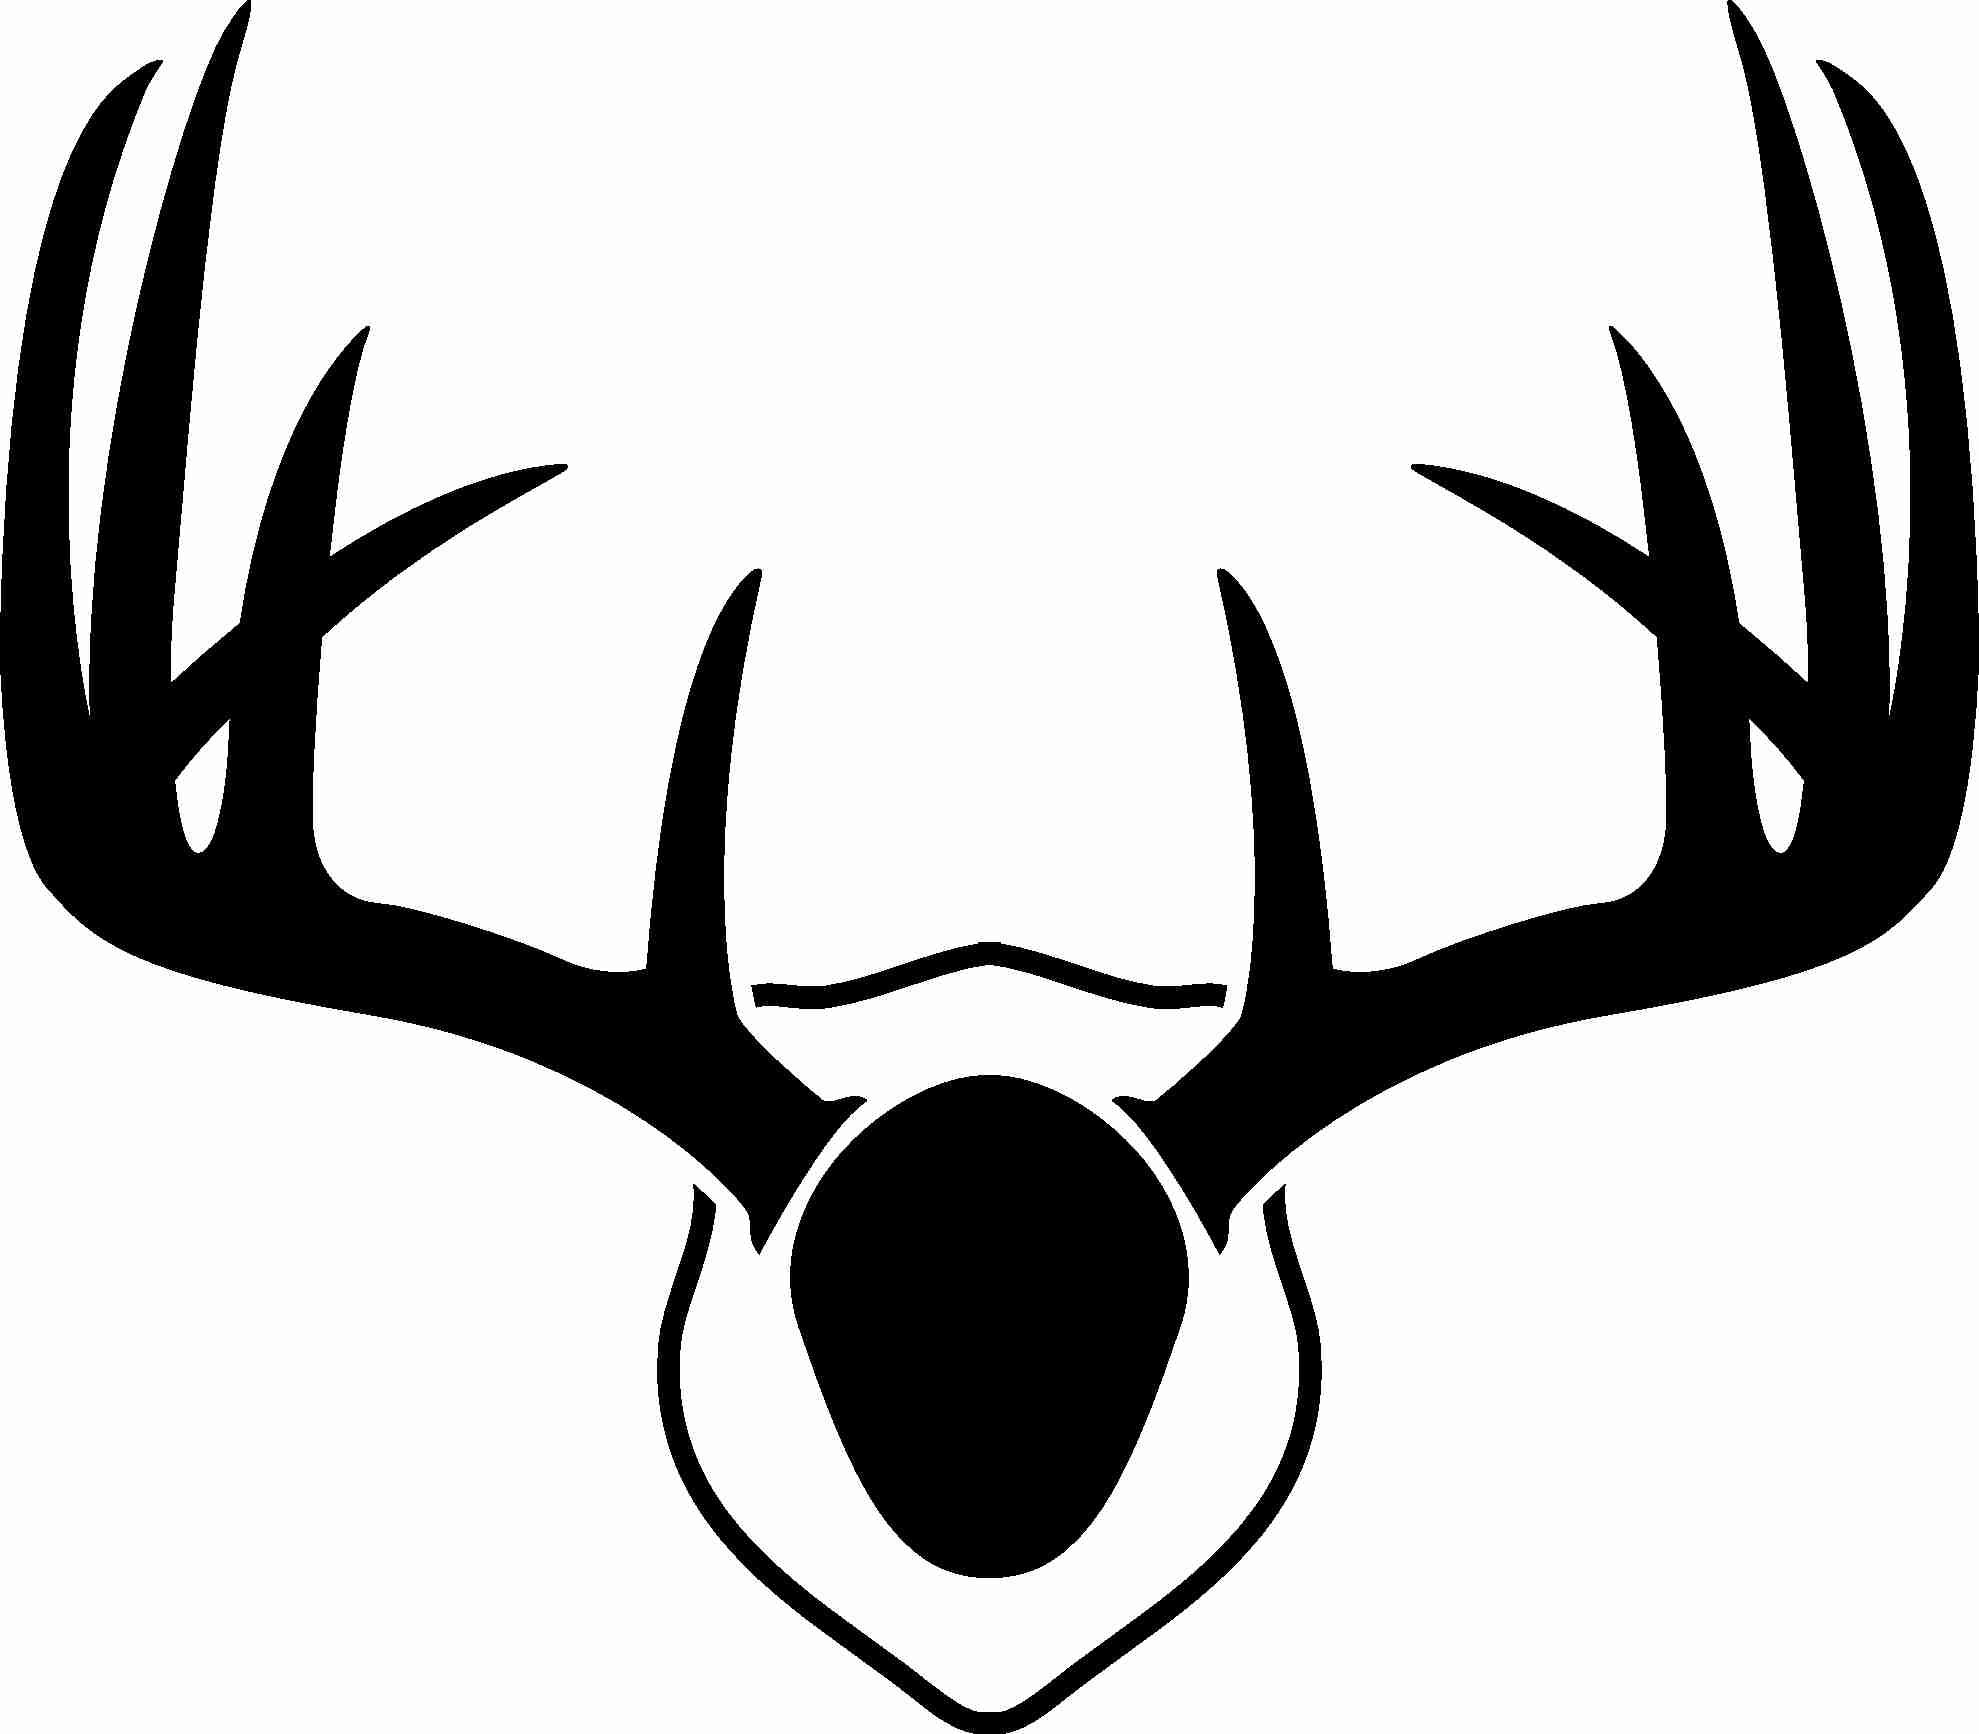 1979x1734 Deer Head Silhouette Royalty Free Cliparts Vectors And Stock Fancy